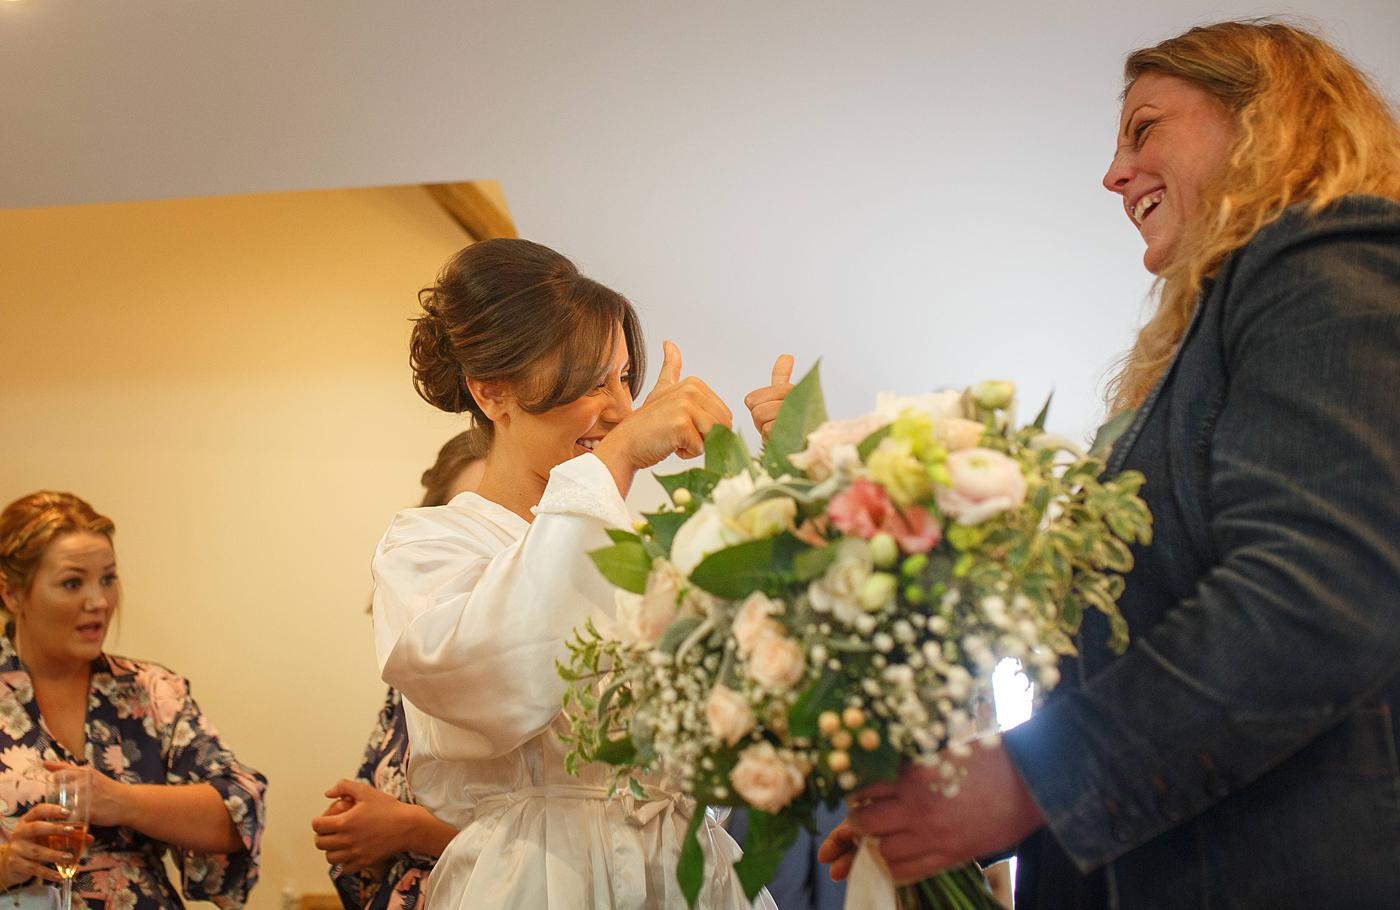 a bride inspects her bridal flowers